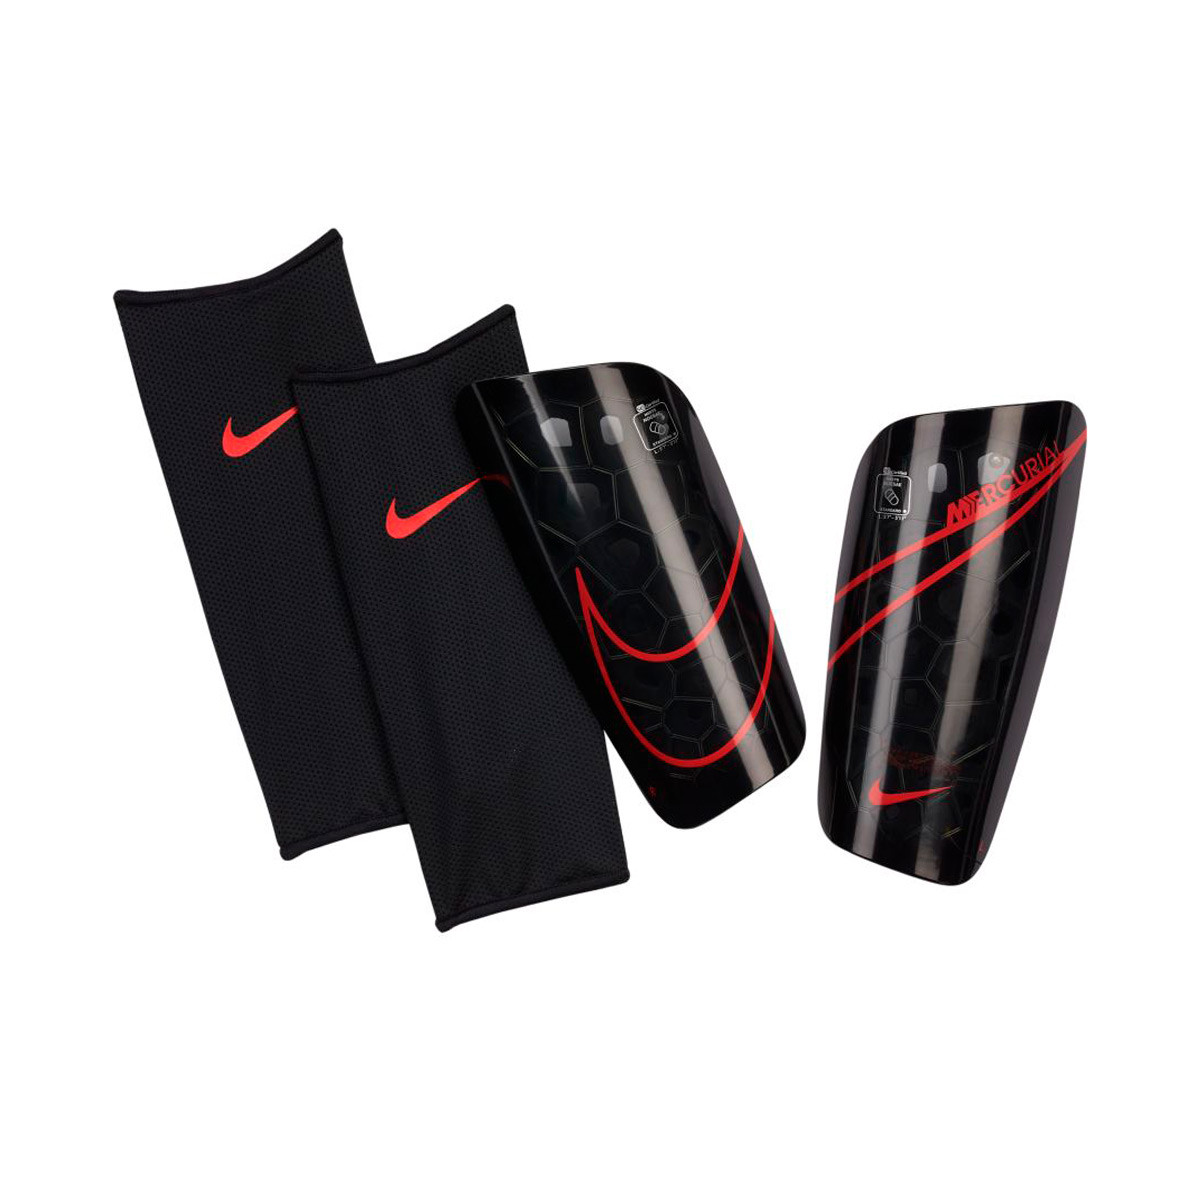 Mujer hermosa inalámbrico Persona enferma  Shinpads Nike Mercurial Lite Black-Black-Chile red - Football store Fútbol  Emotion